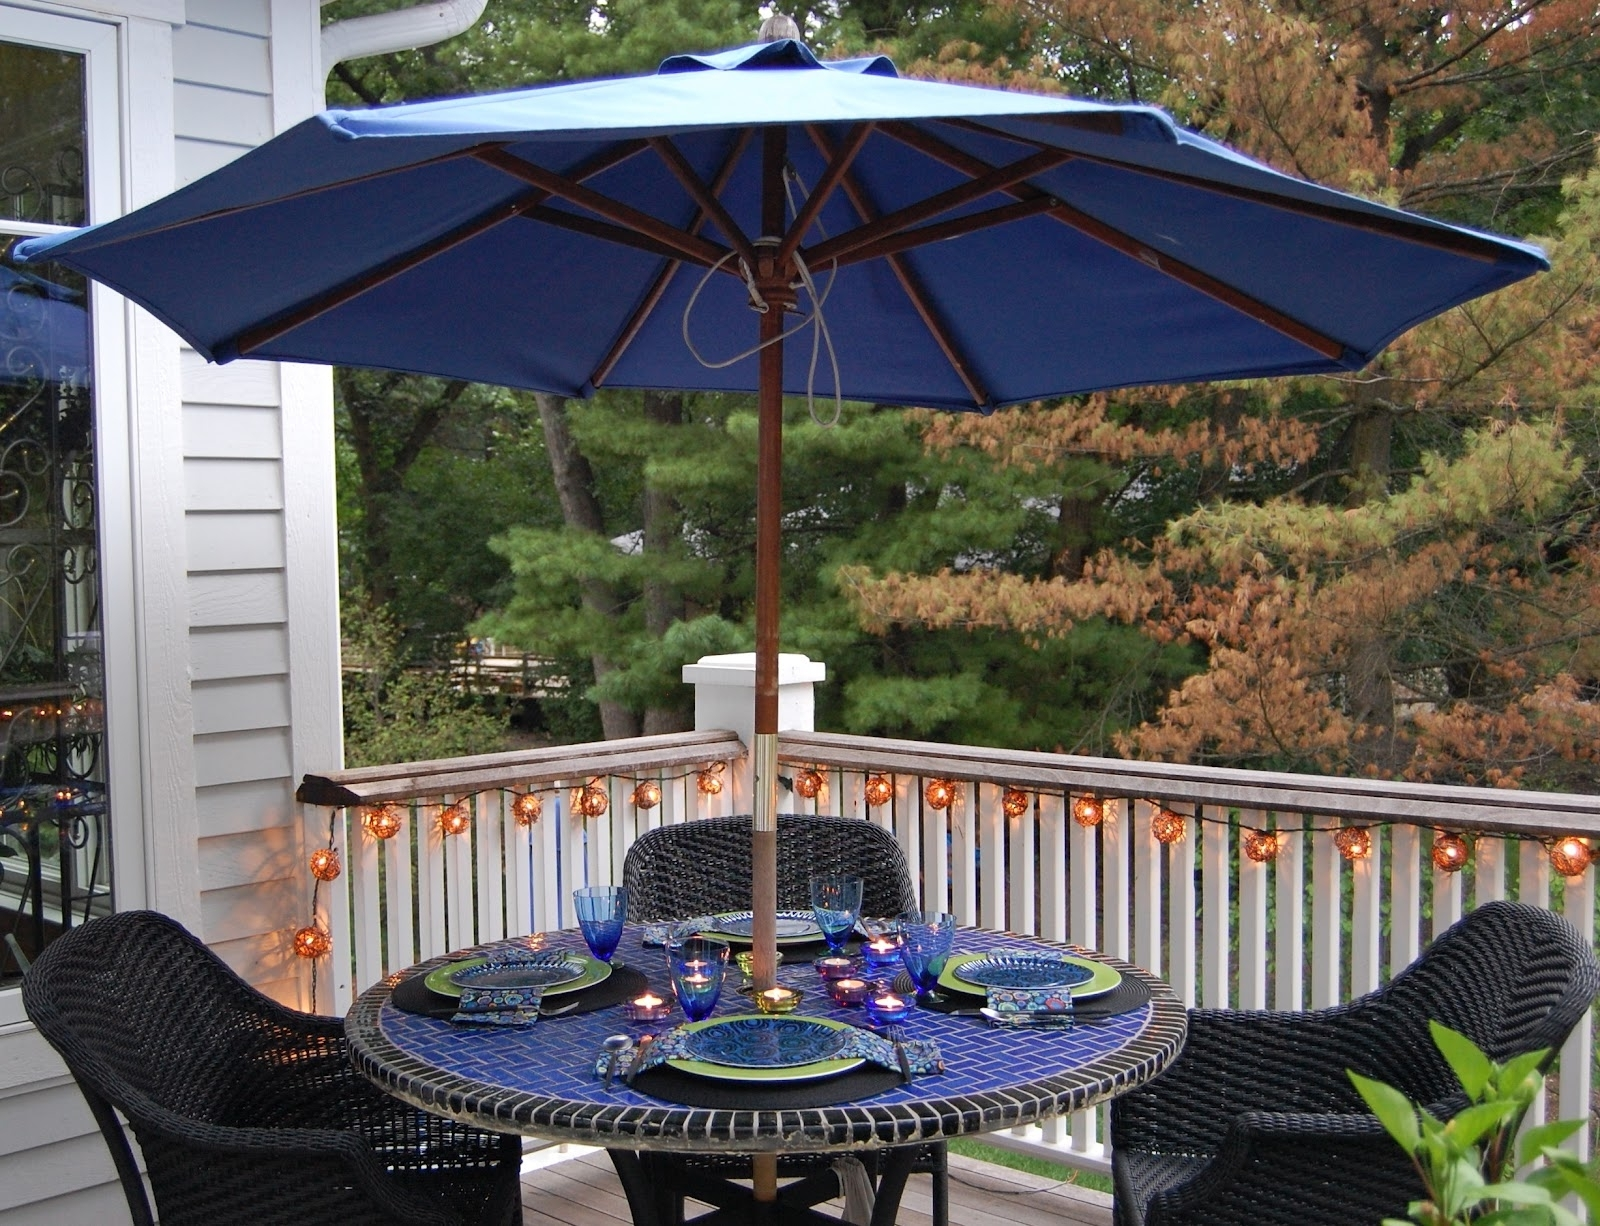 Patio: Awesome Umbrella Patio Set Frontgate Outdoor Furniture Inside Favorite Patio Furniture With Umbrellas (View 5 of 20)